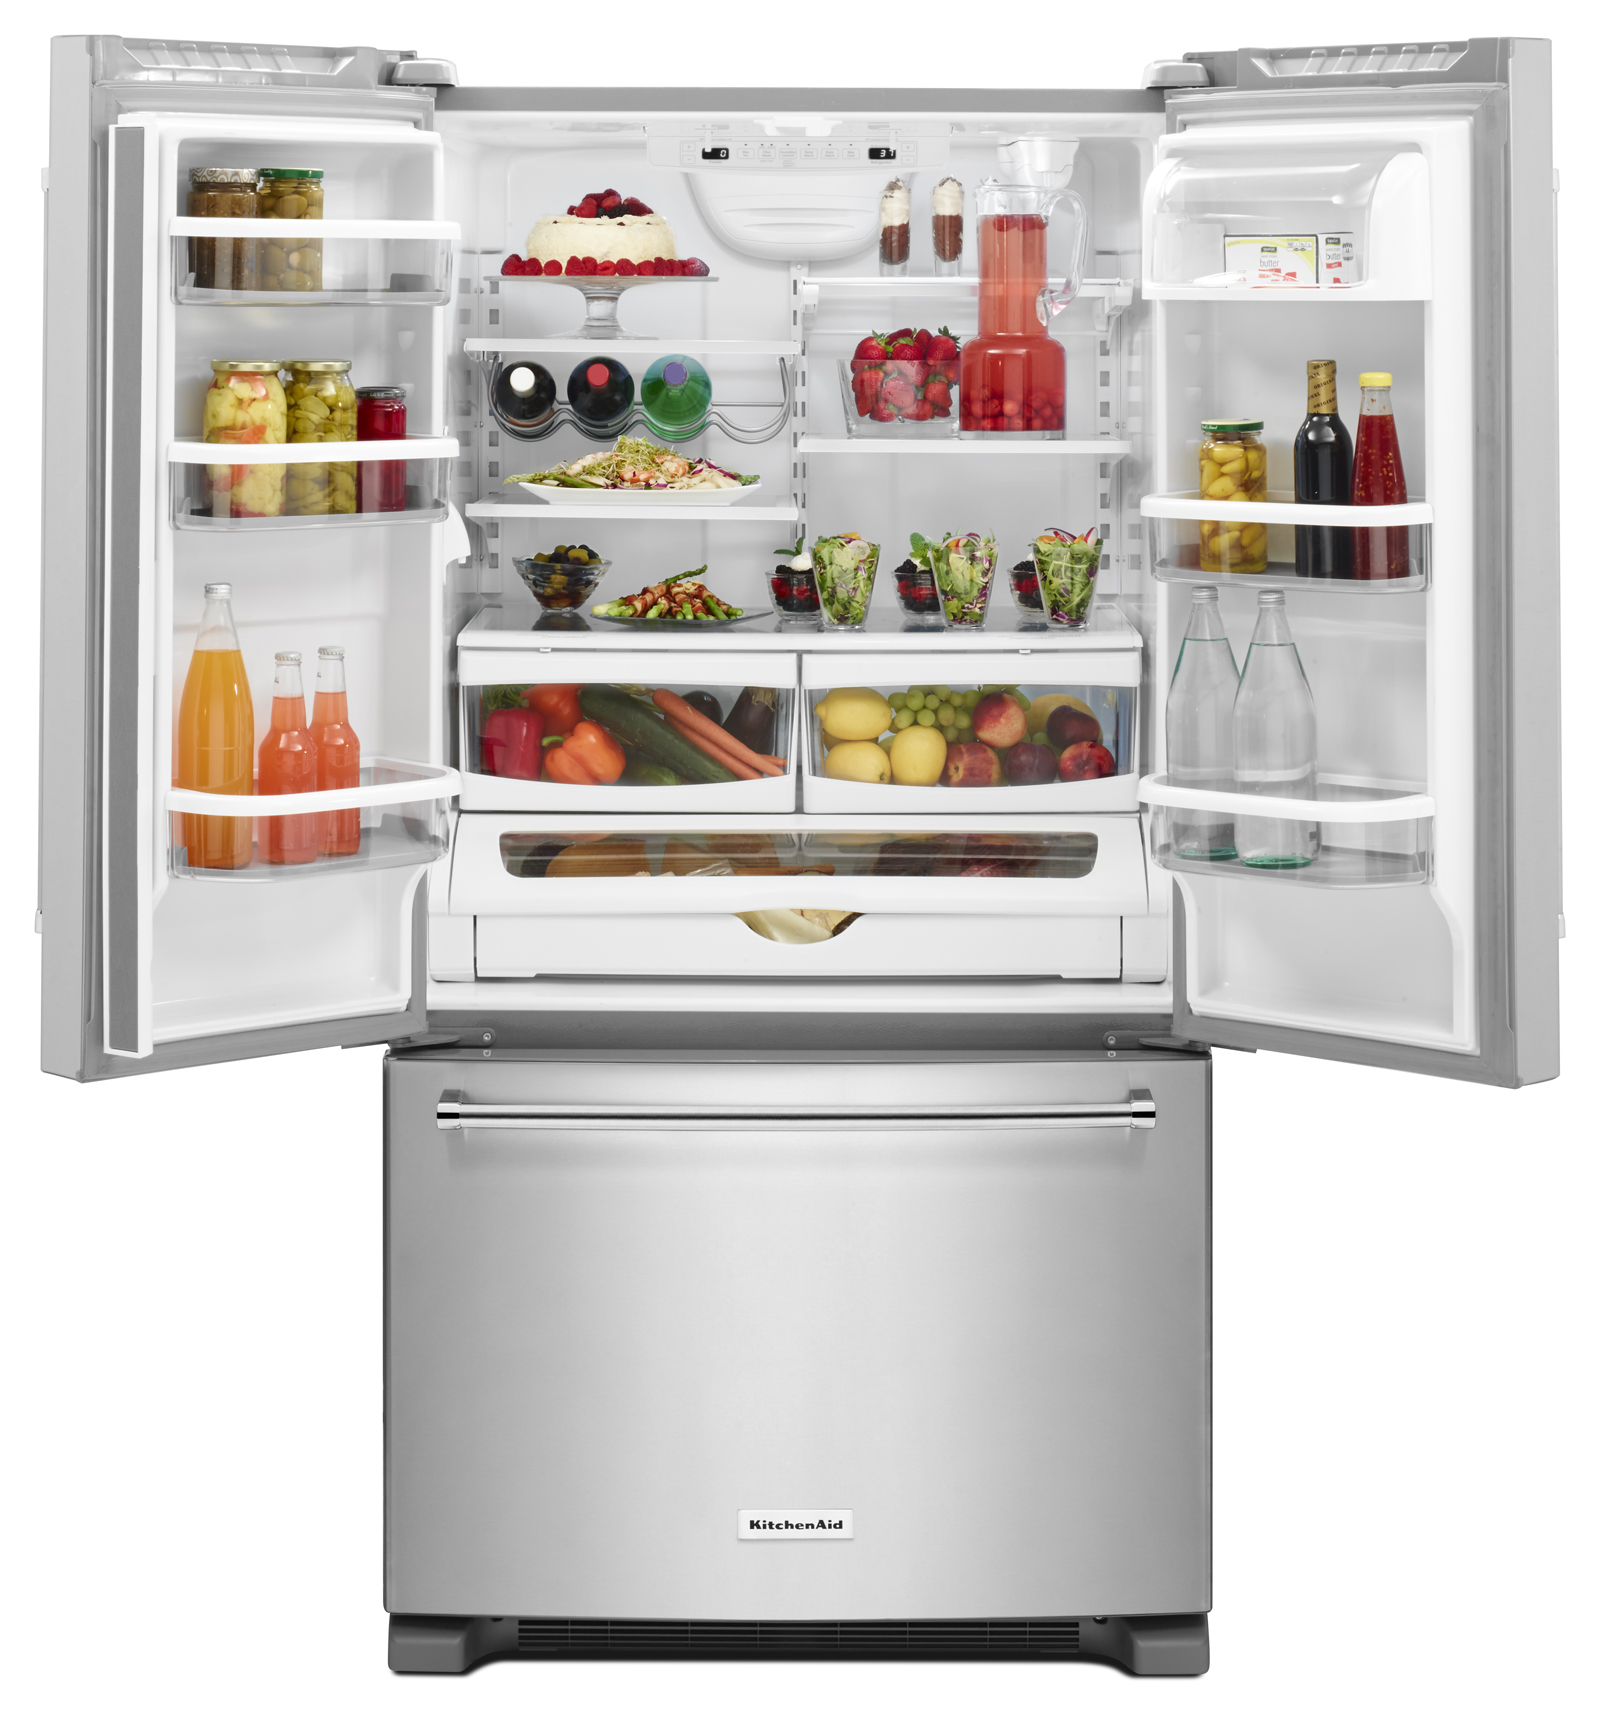 KitchenAid KRFF305ESS 25 cu. ft. French Door Refrigerator - Stainless Steel